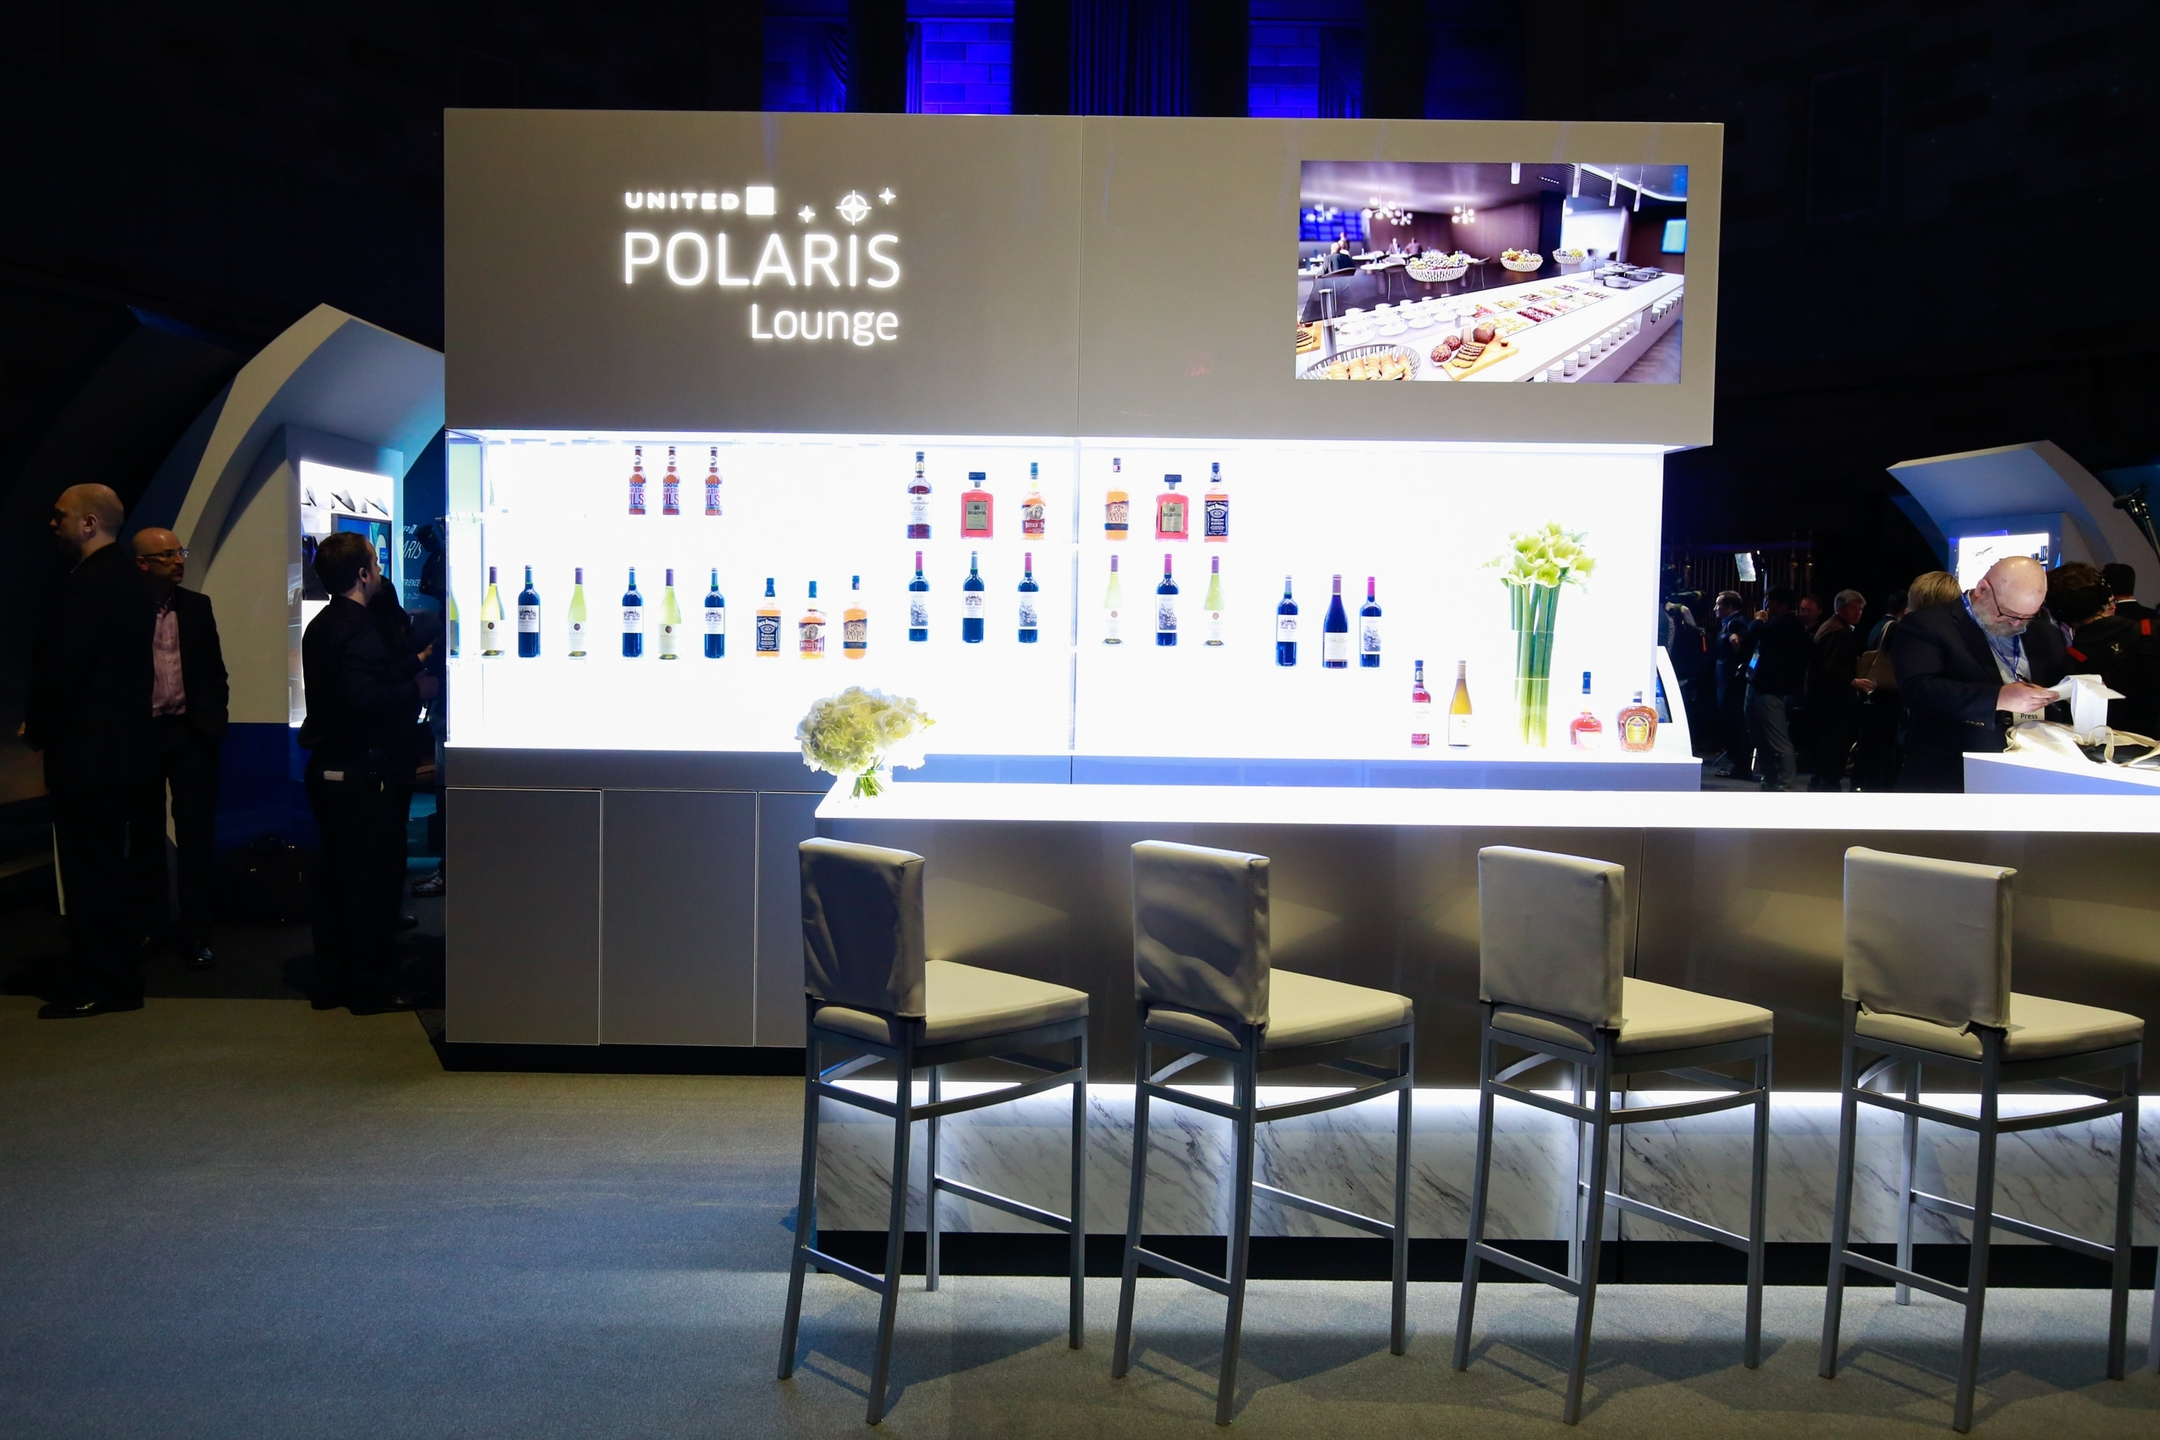 United Airlines unveils the all-new United Polaris business class, featuring a re-imagined, sleep-enhancing, lounge-to-landing experience for intercontinental travelers on Thursday, June 2, 2016 in New York. (Mark Von Holden/AP Images for United Airlines)